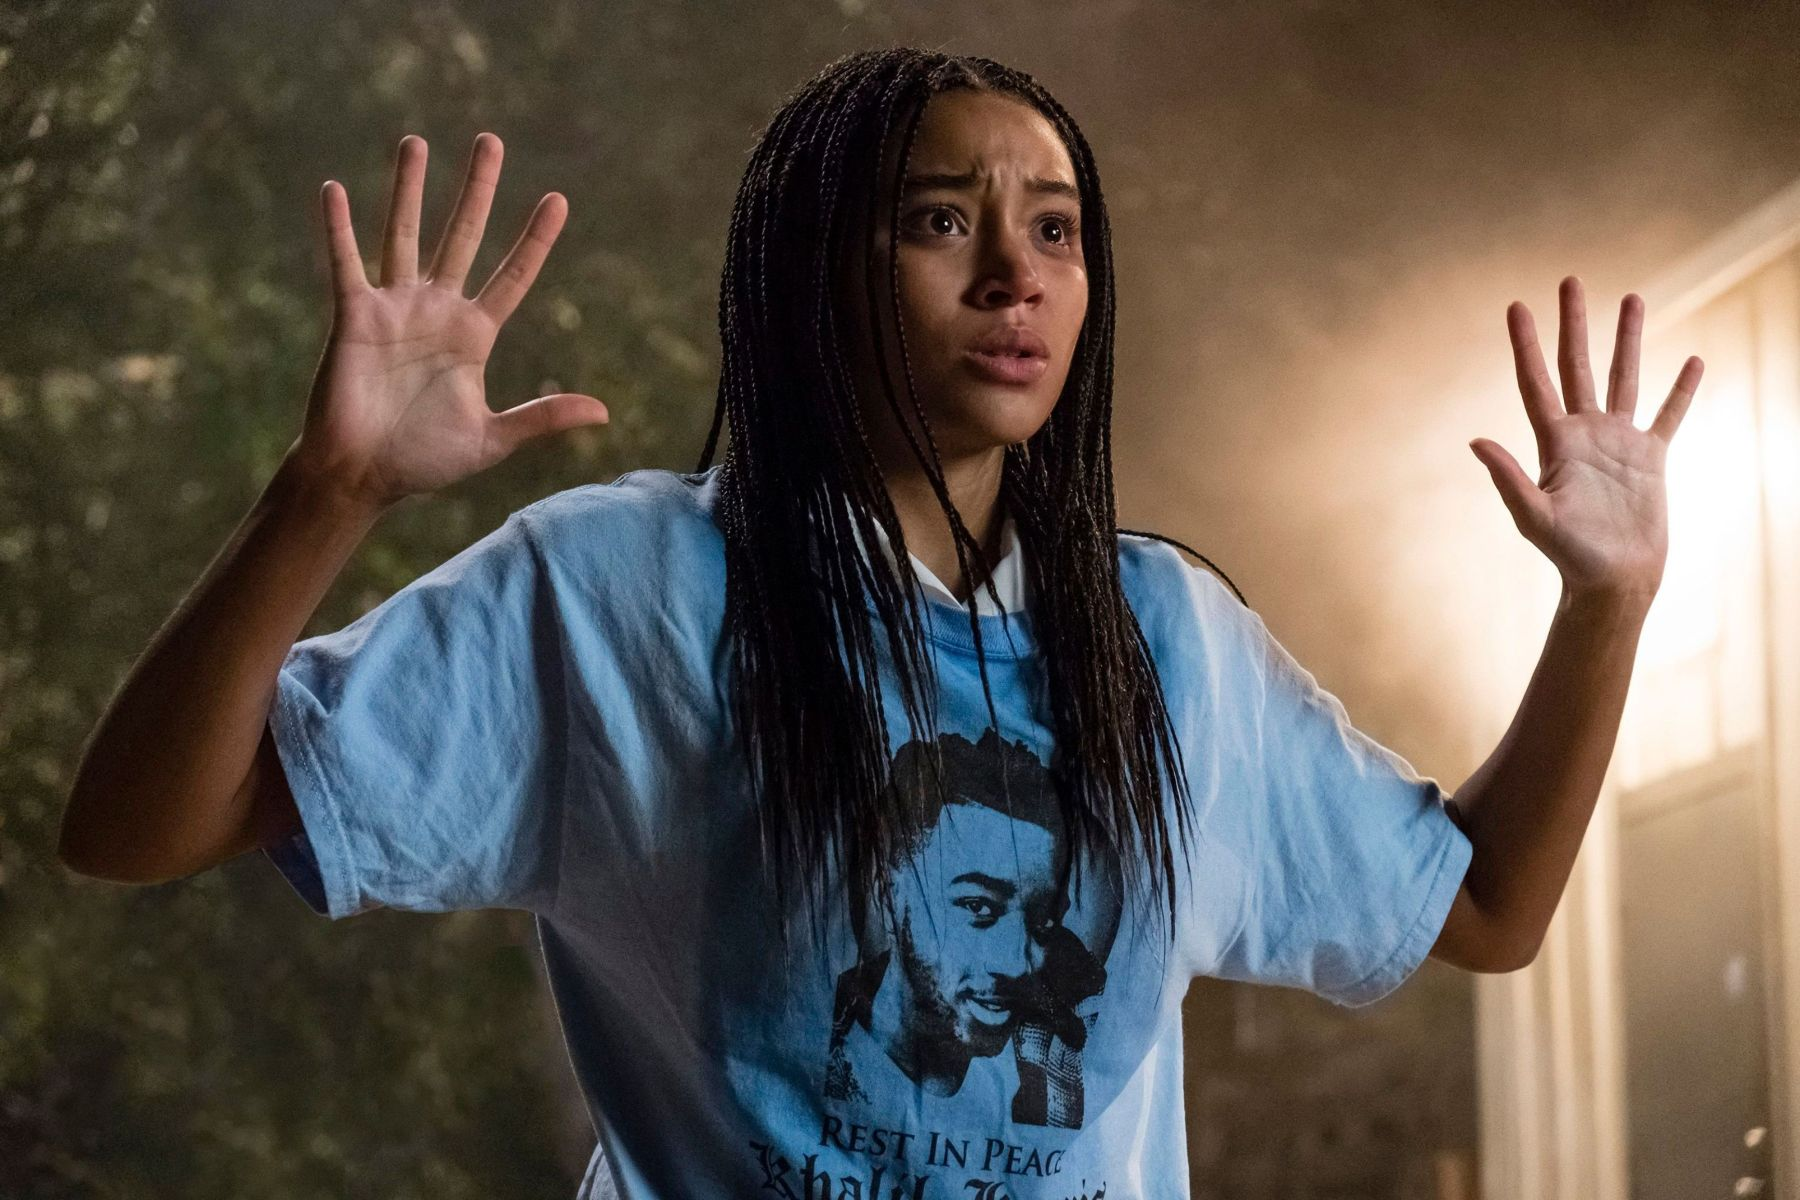 the hate u give stream online free